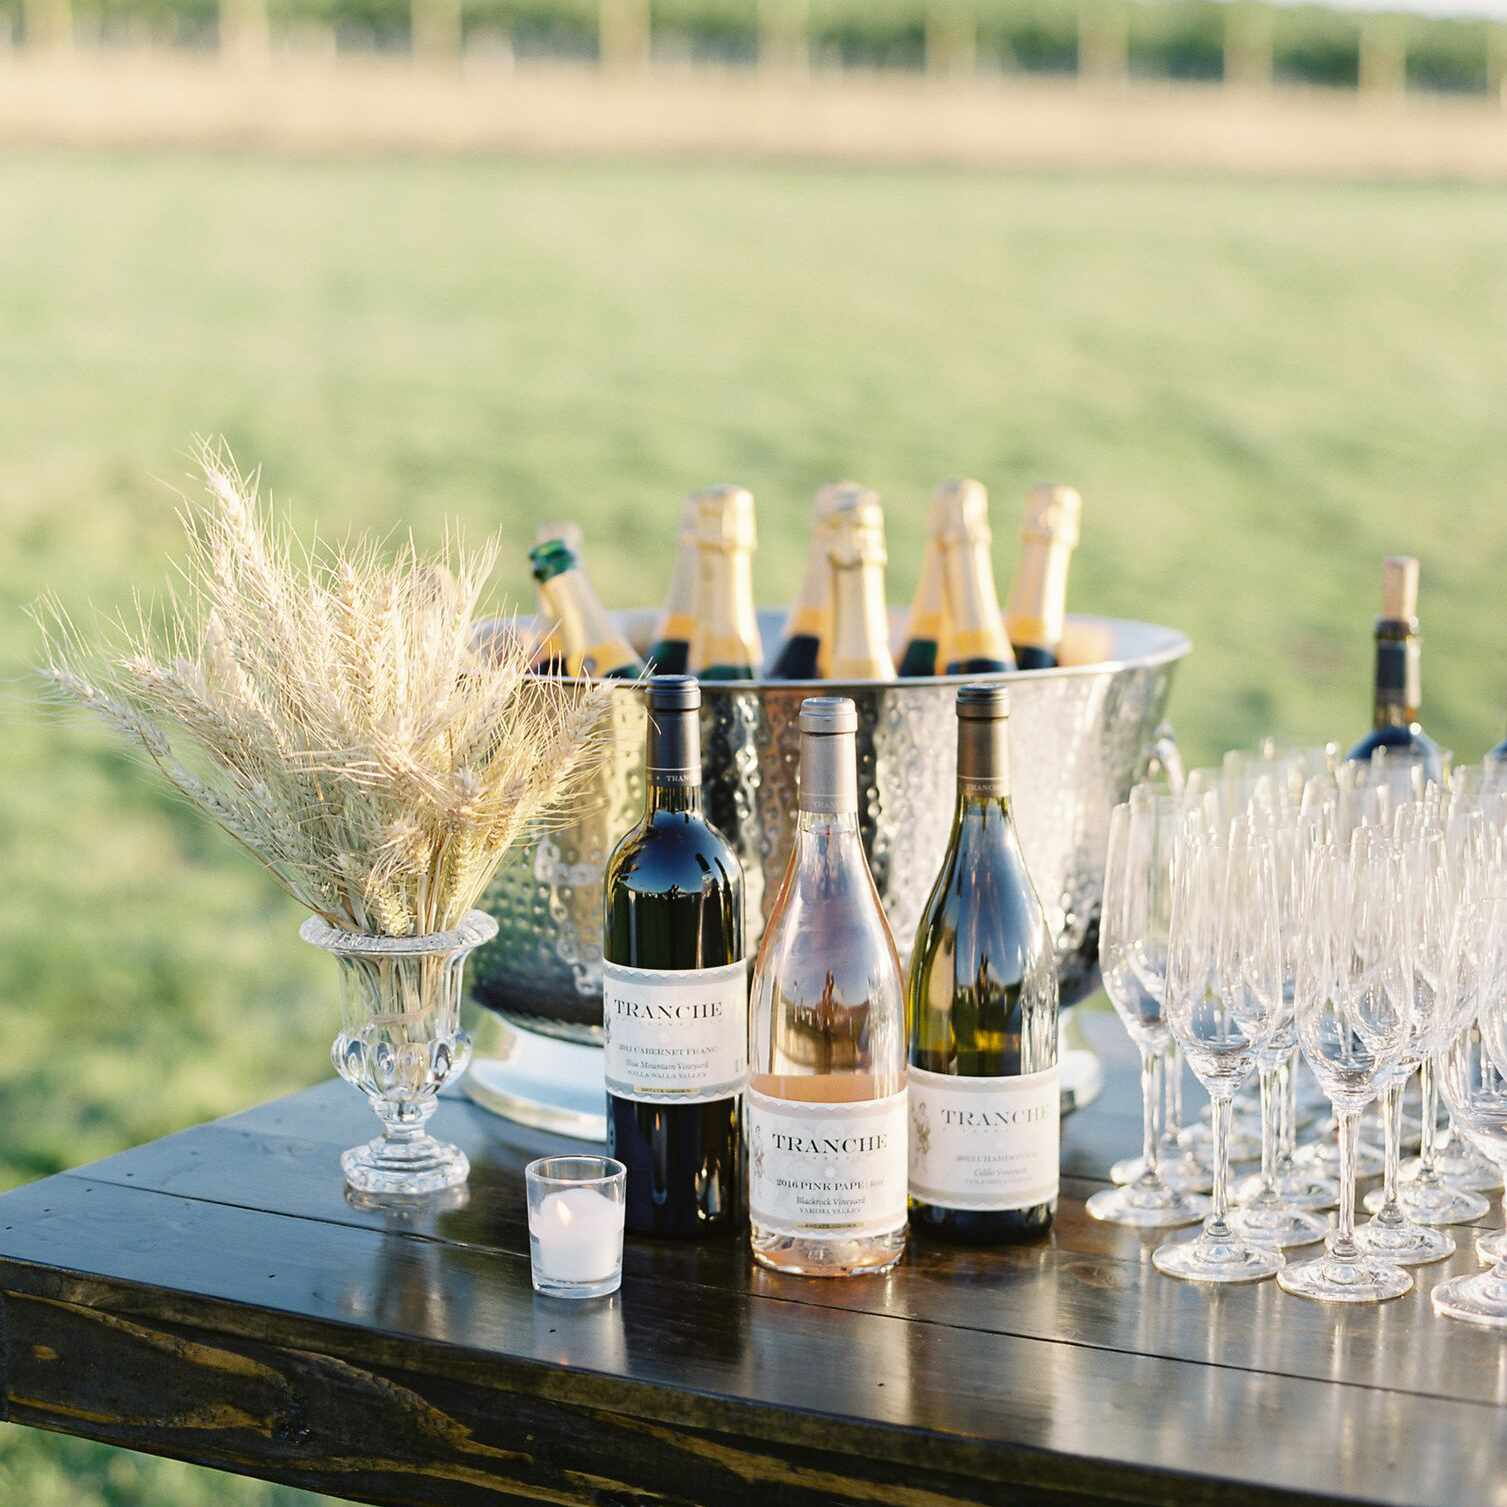 Bottles of wine and glasses on a table with a vineyard in the background